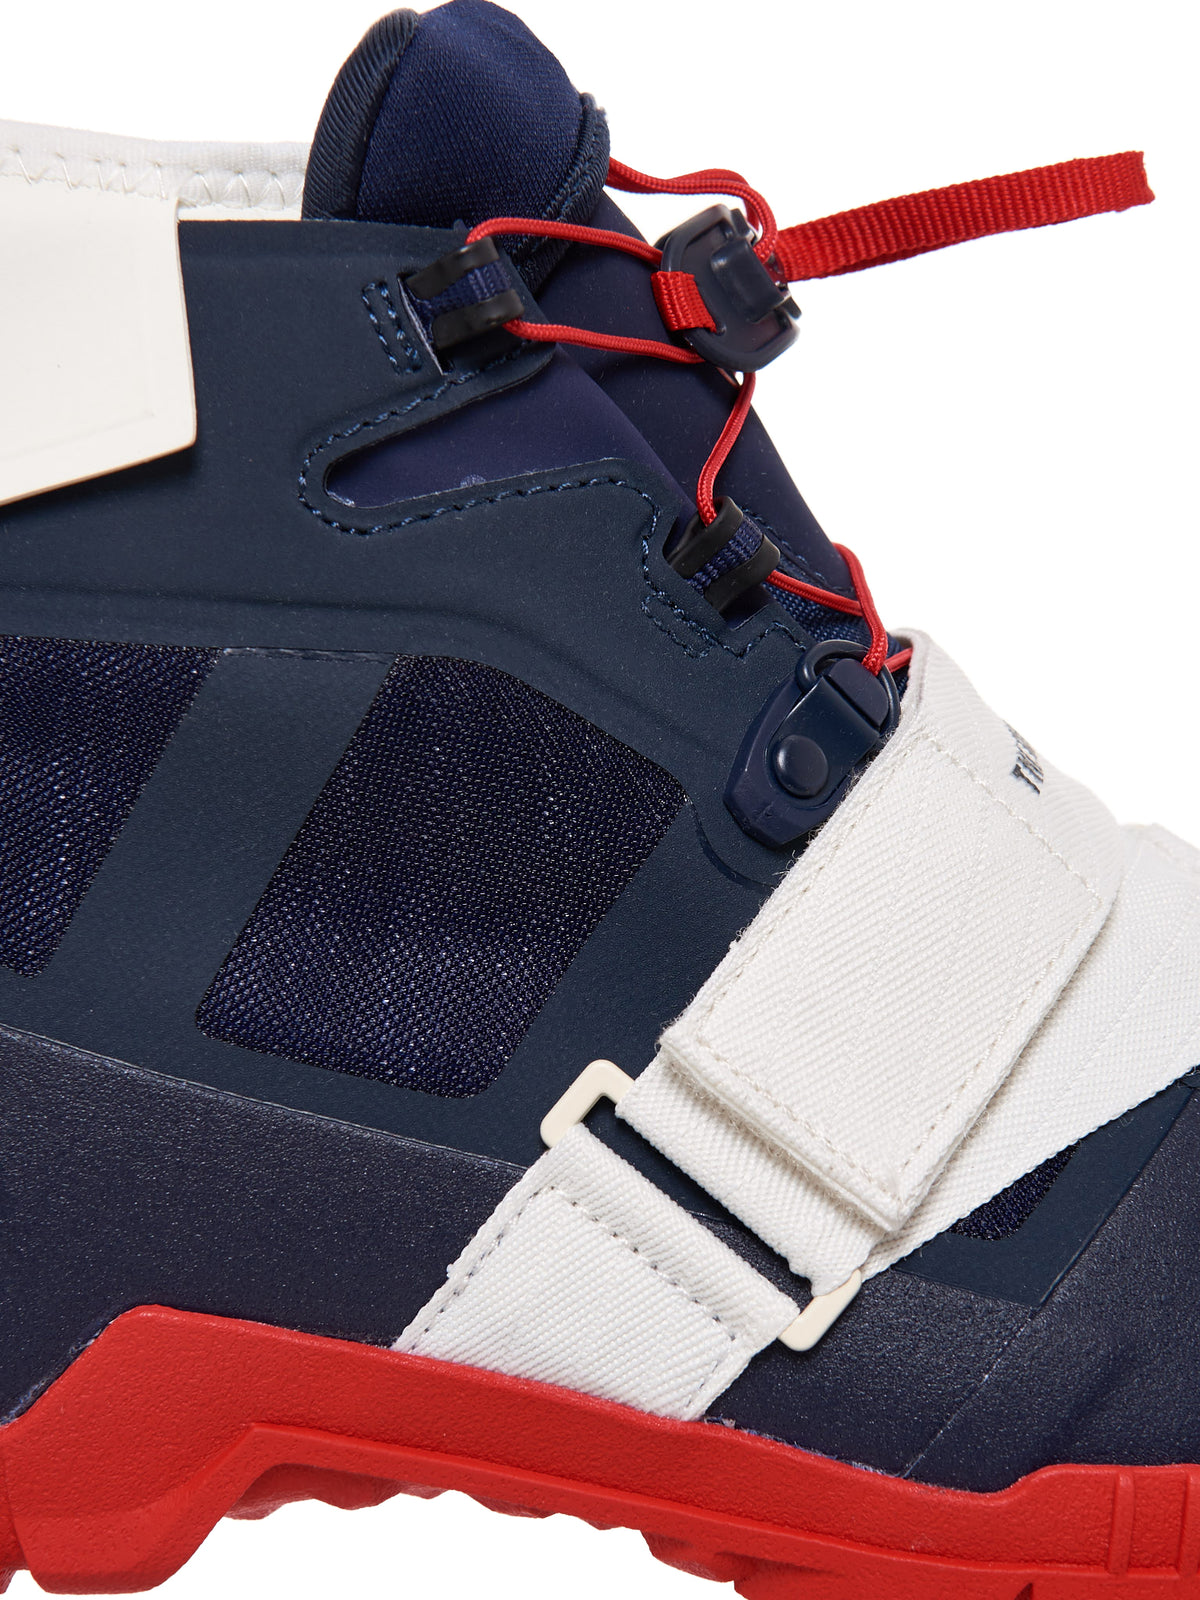 Nike x Undercover Boot - Hlorenzo Detail 2